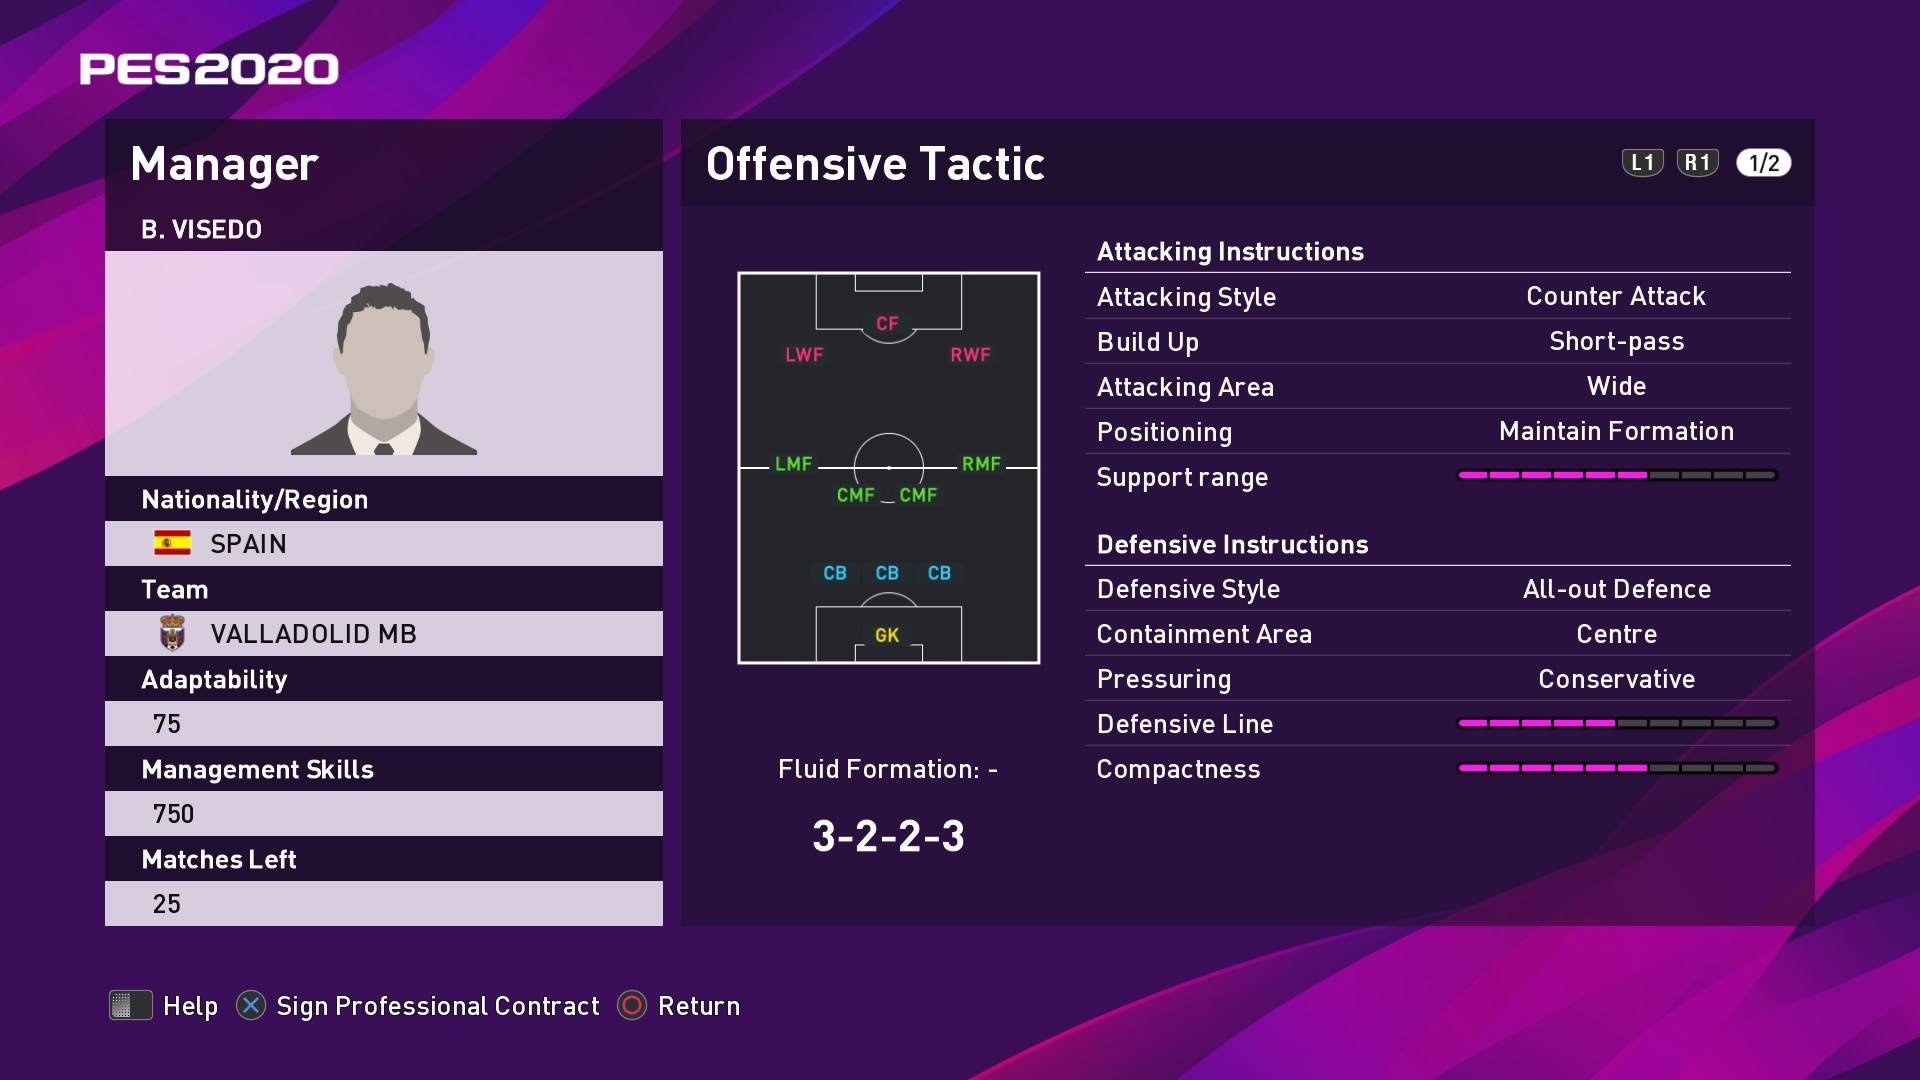 B. Visedo (Sergio Soriano) Offensive Tactic in PES 2020 myClub